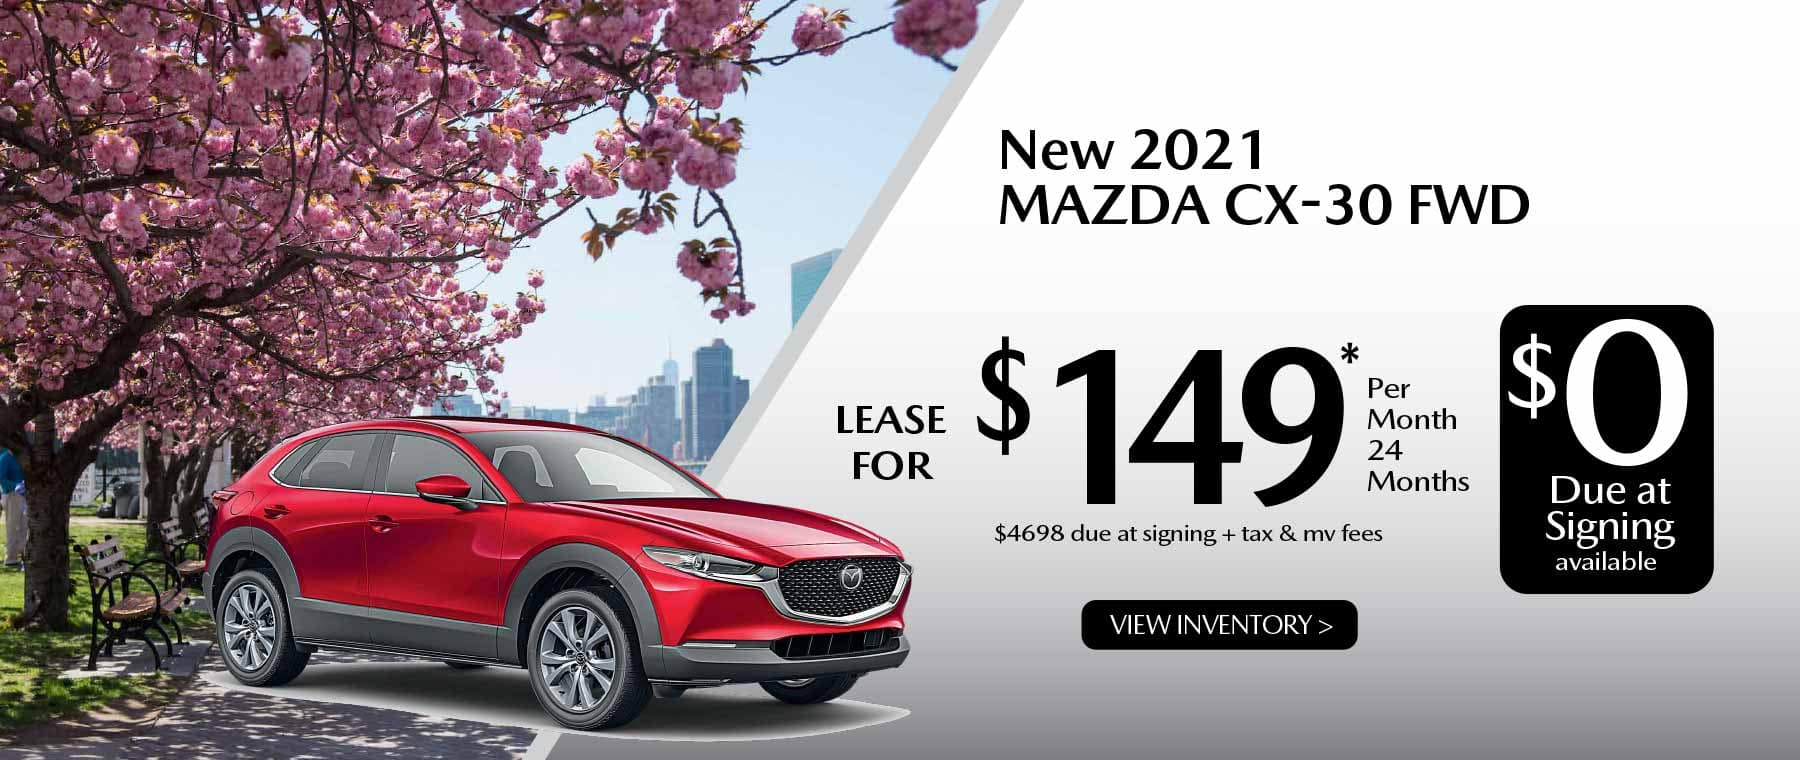 05hi CX-30 New Lease Special Offer Garden City Mazda NY